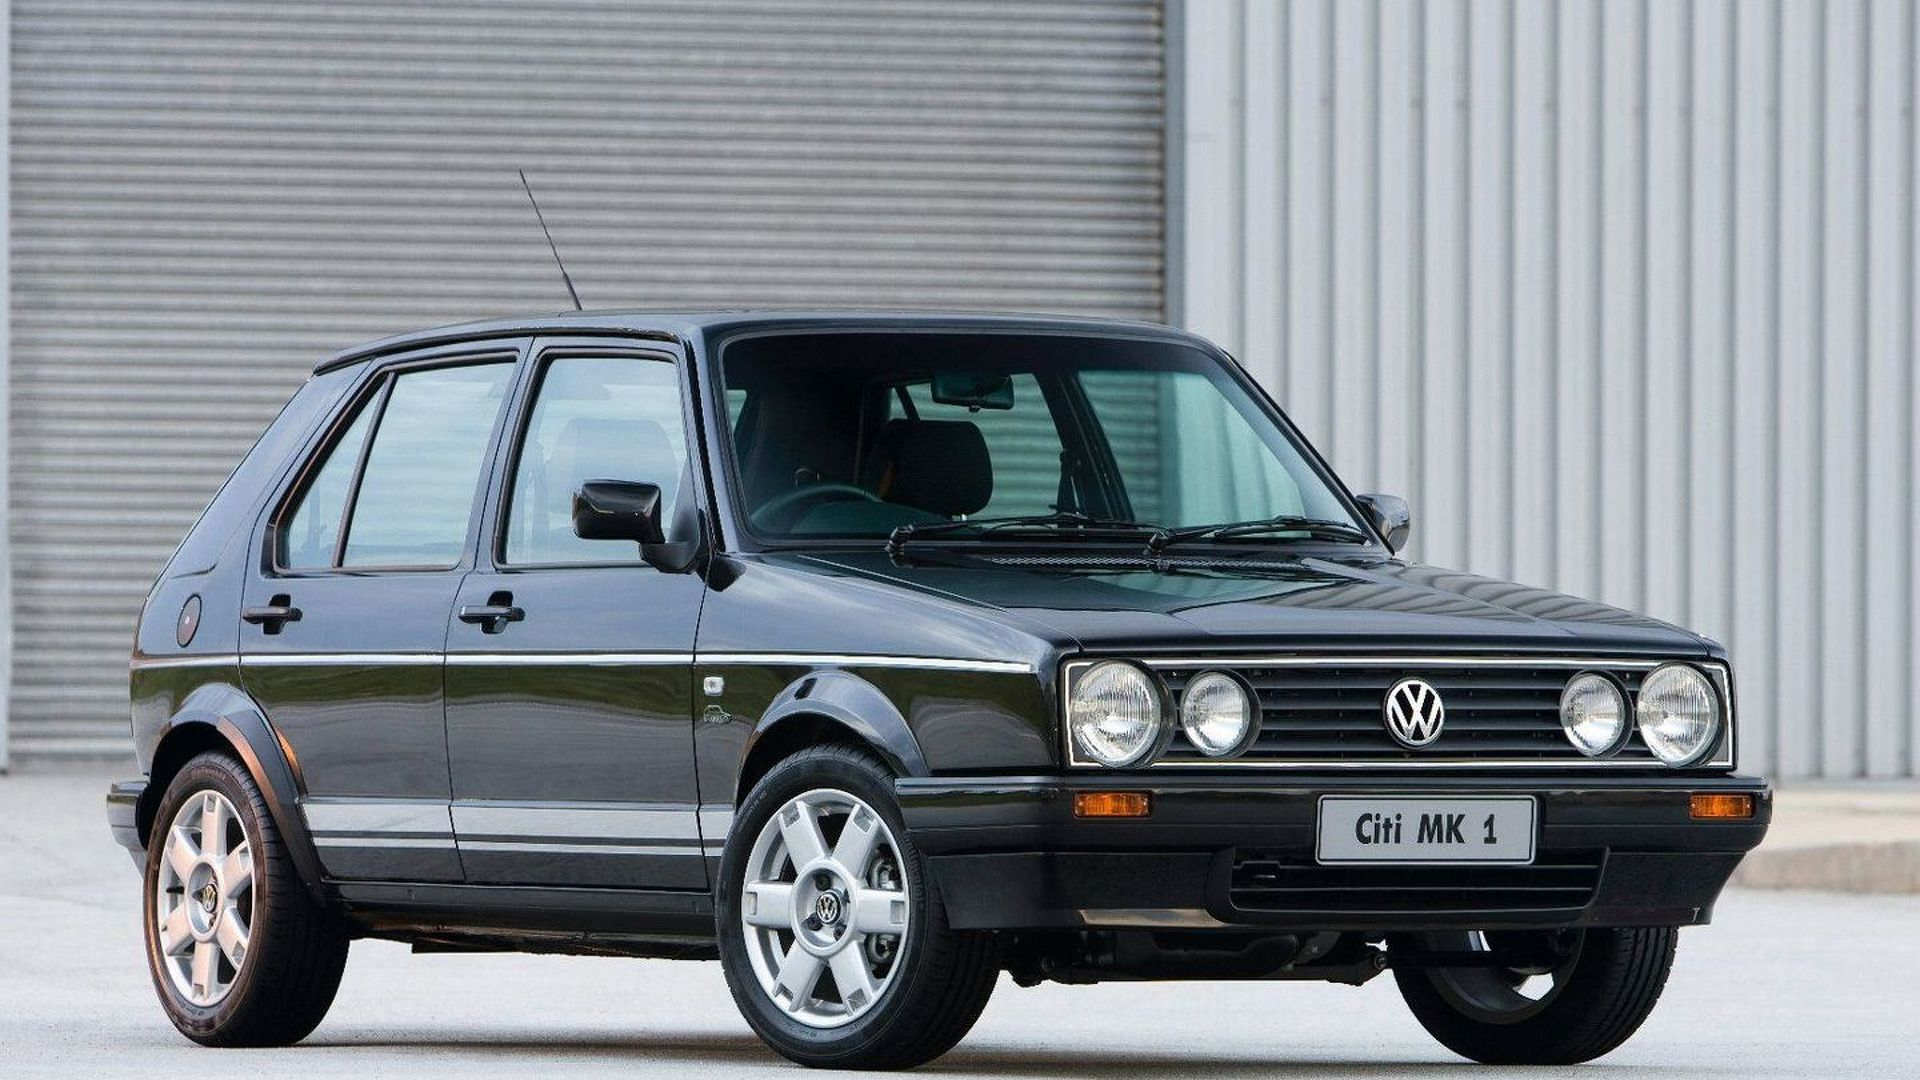 vw ends golf i production in south africa with citi golf mk1 limited edition. Black Bedroom Furniture Sets. Home Design Ideas